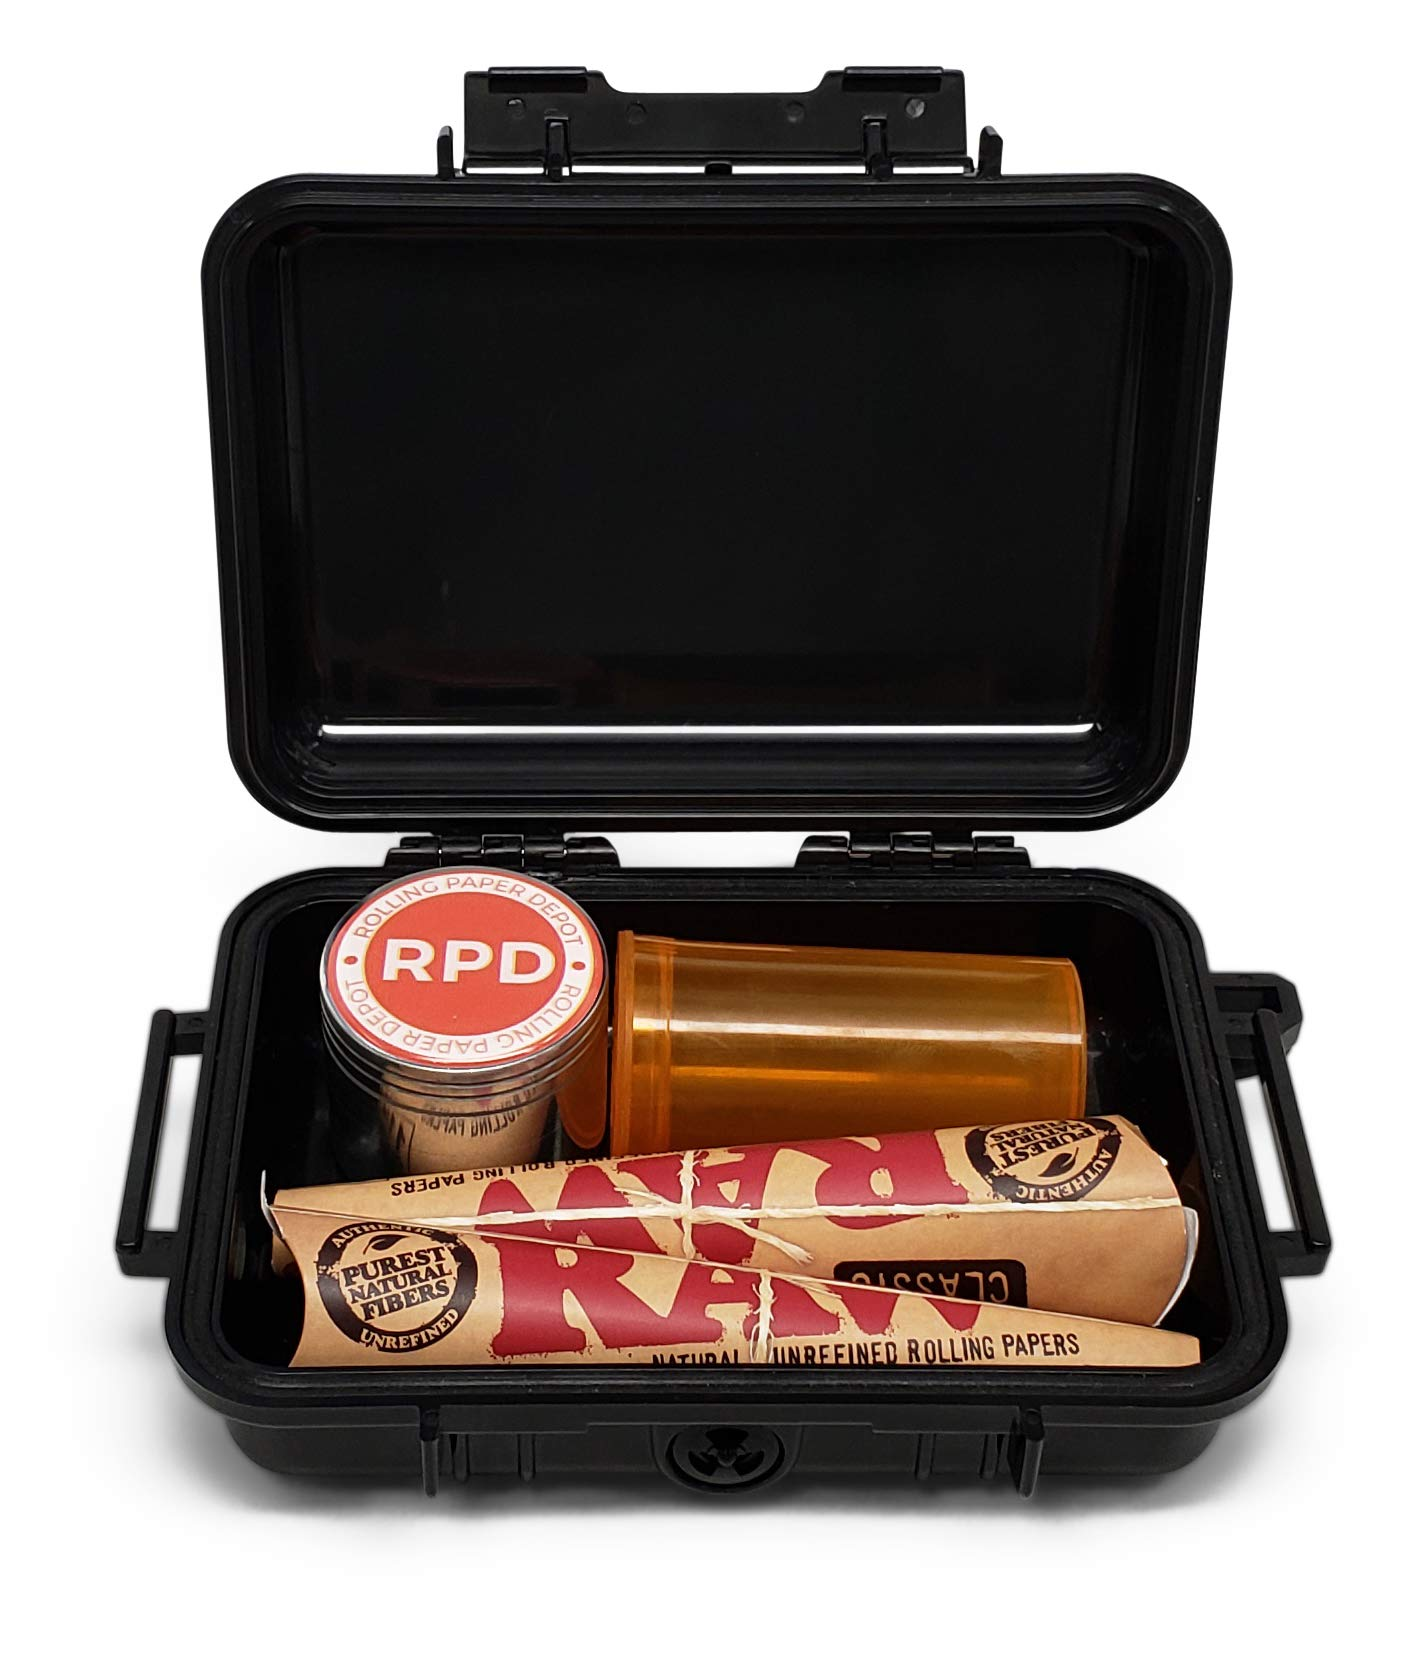 RAW Pre Rolled Cones 1 1/4 (2 Packs of 6) with Leaf Lock Gear Airtight Travel Case, Rolling Paper Depot 42mm Grinder and Pop Top Storage Container - 5 Item Bundle